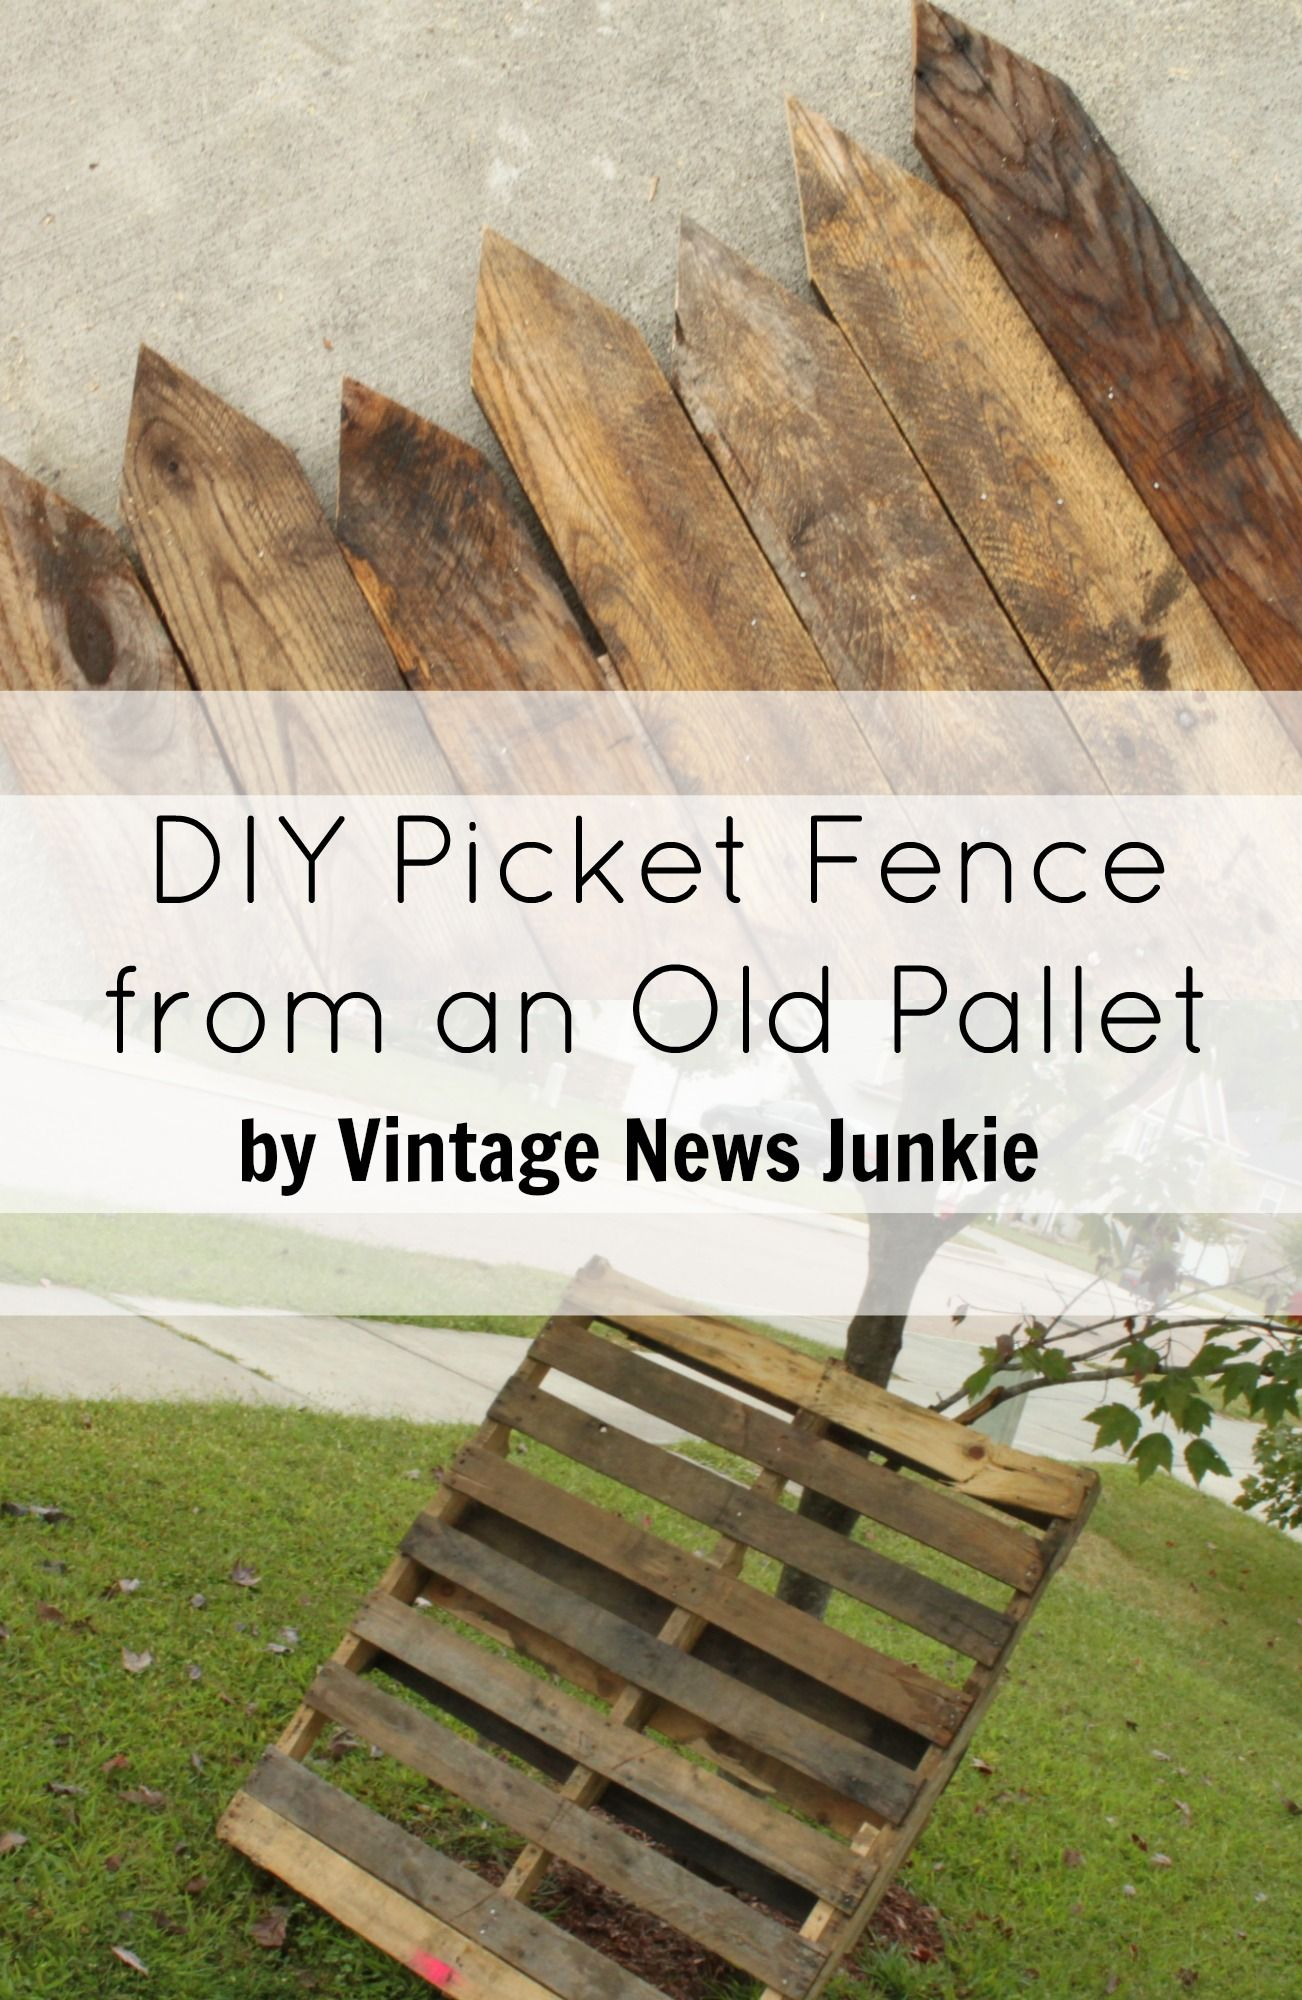 DIY Mini Picket Fence from an Old Pallet | Pinterest | Fences ...